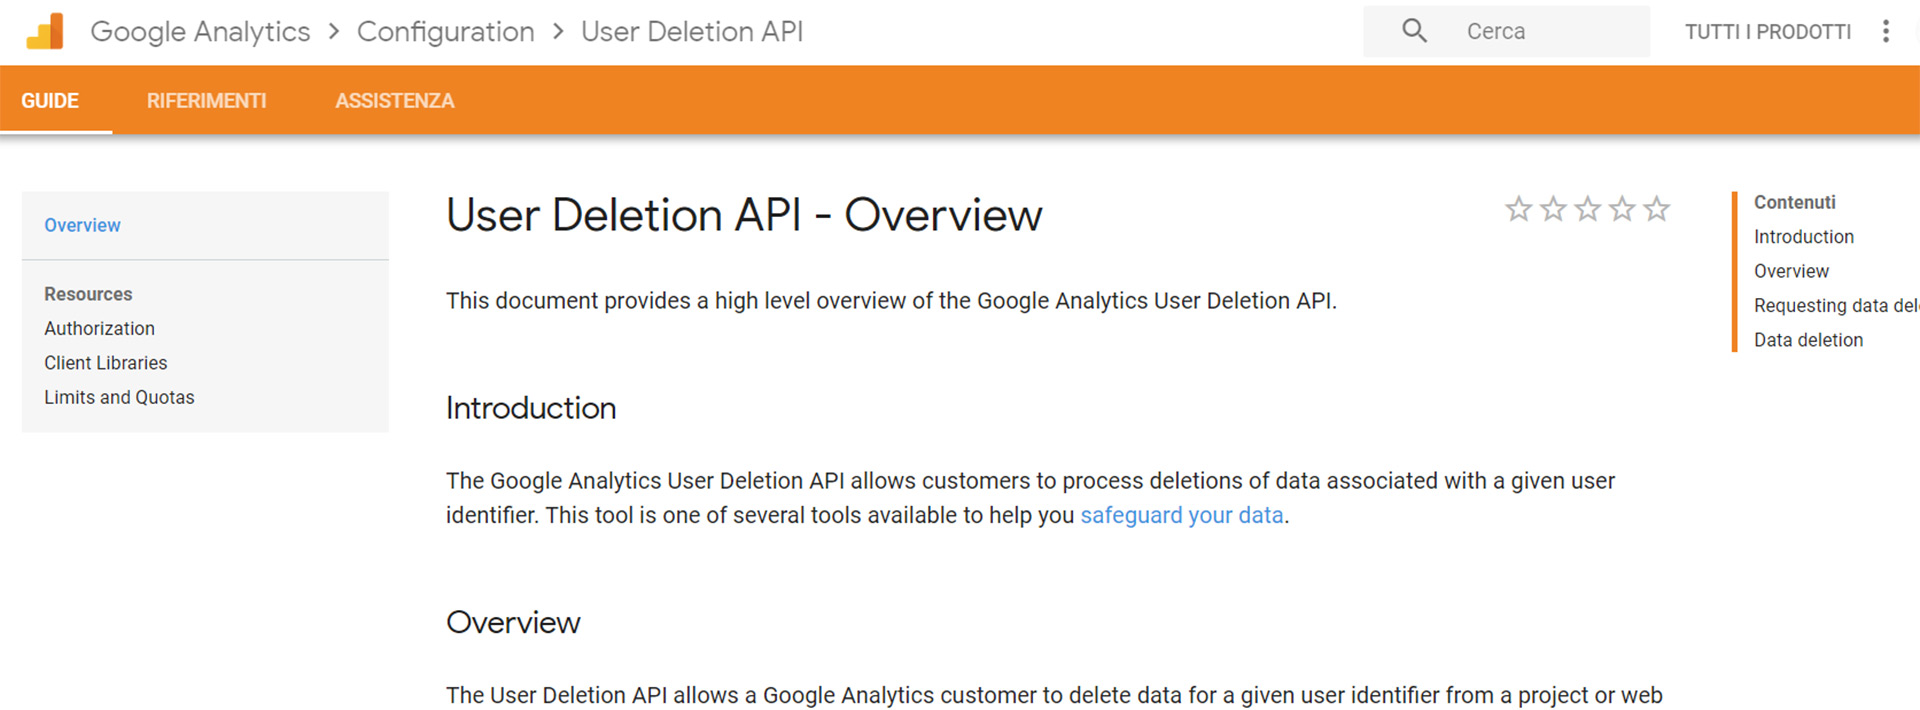 user deletion api